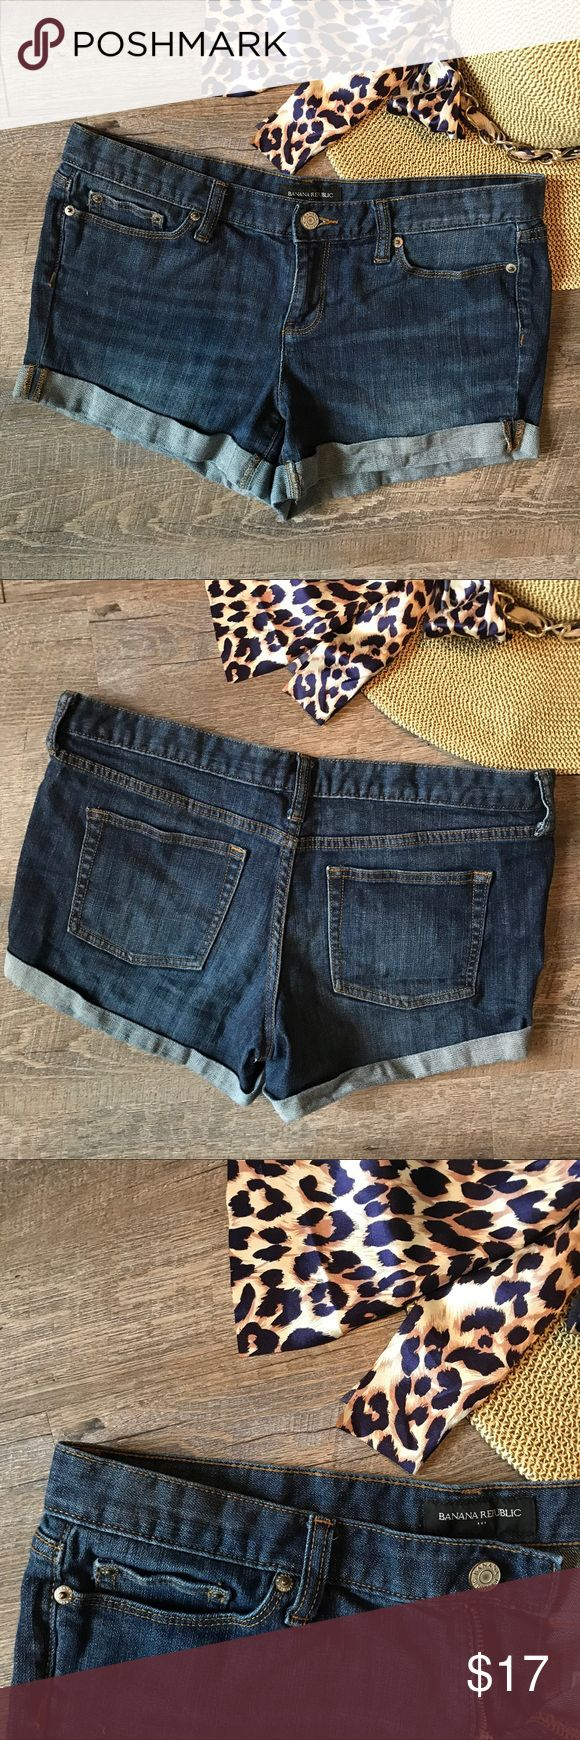 Banana Republic Jean Shorts size 8 Super cute Banana Republic jean shorts! 99% cotton, 1% spandex. Size 8. In good condition. See images for measurements. Banana Republic Shorts Jean Shorts